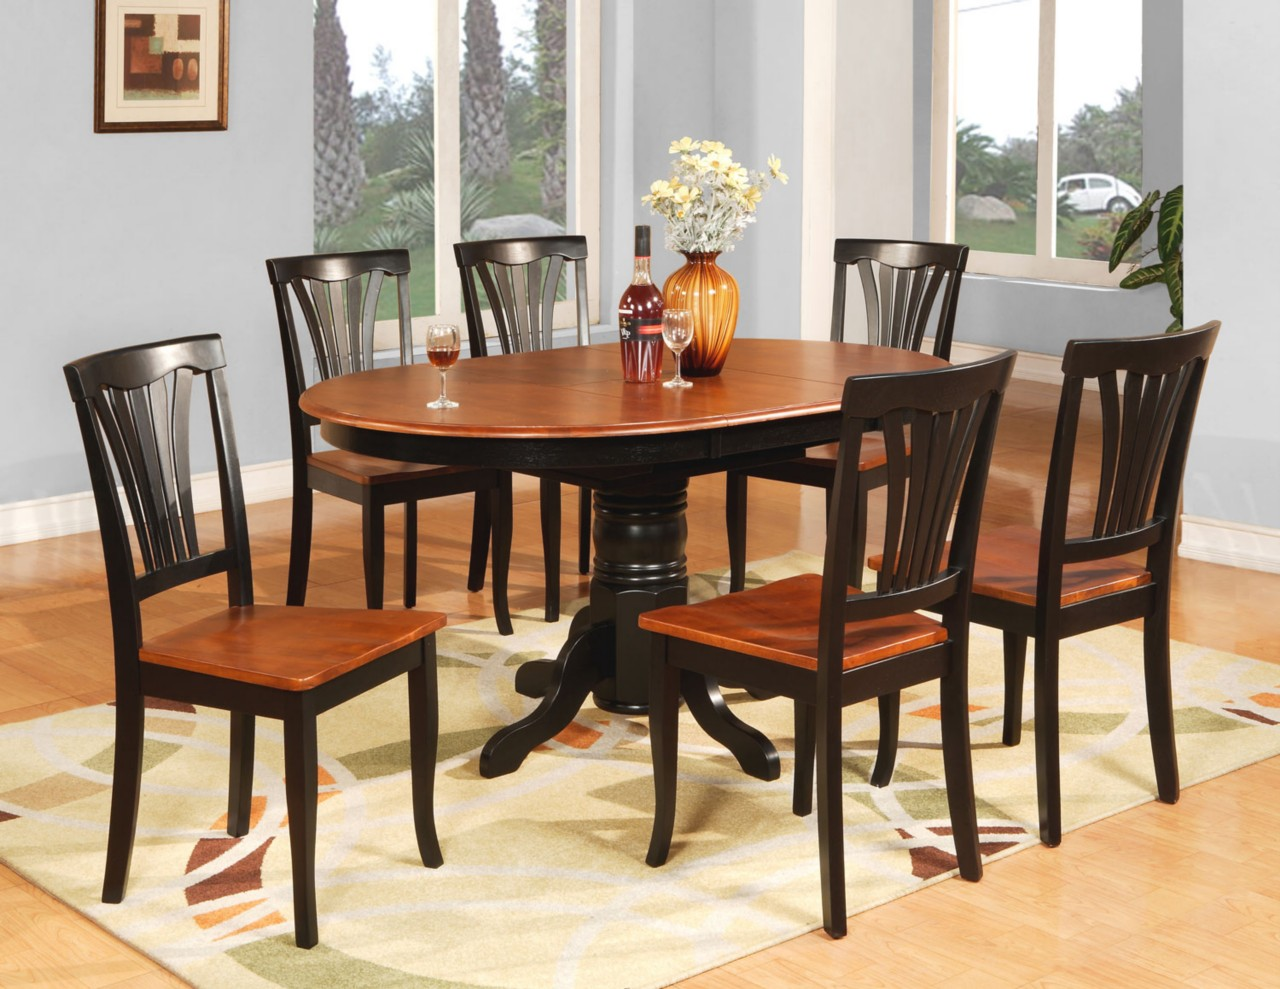 7 pc oval dinette kitchen dining room table 6 chairs ebay Dining room table and chairs